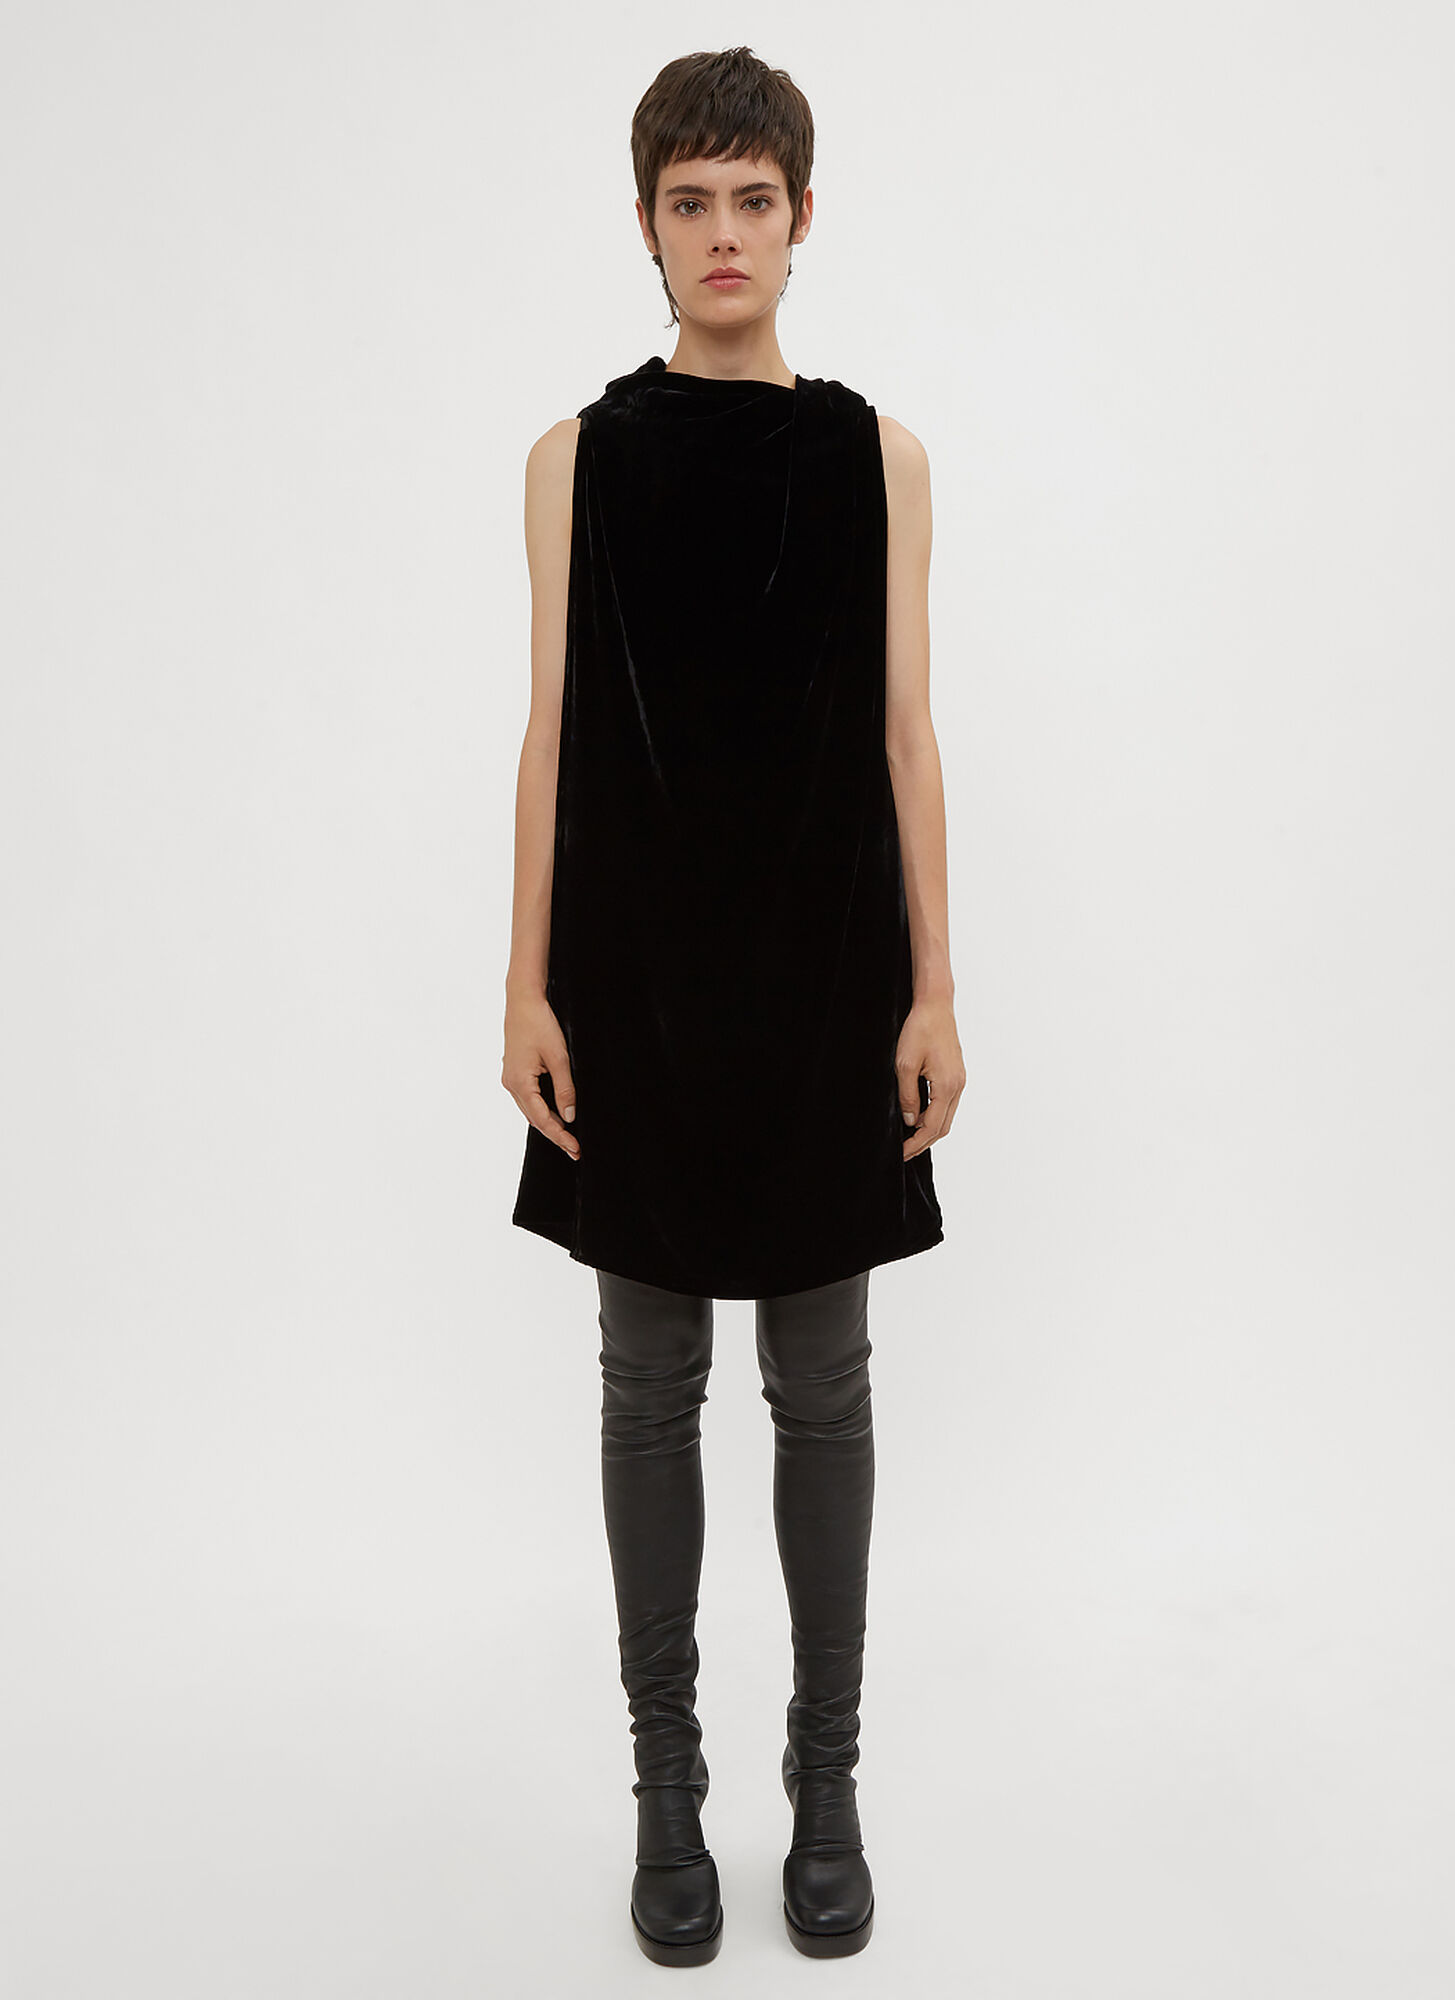 Rick Owens Toga Dress in Black